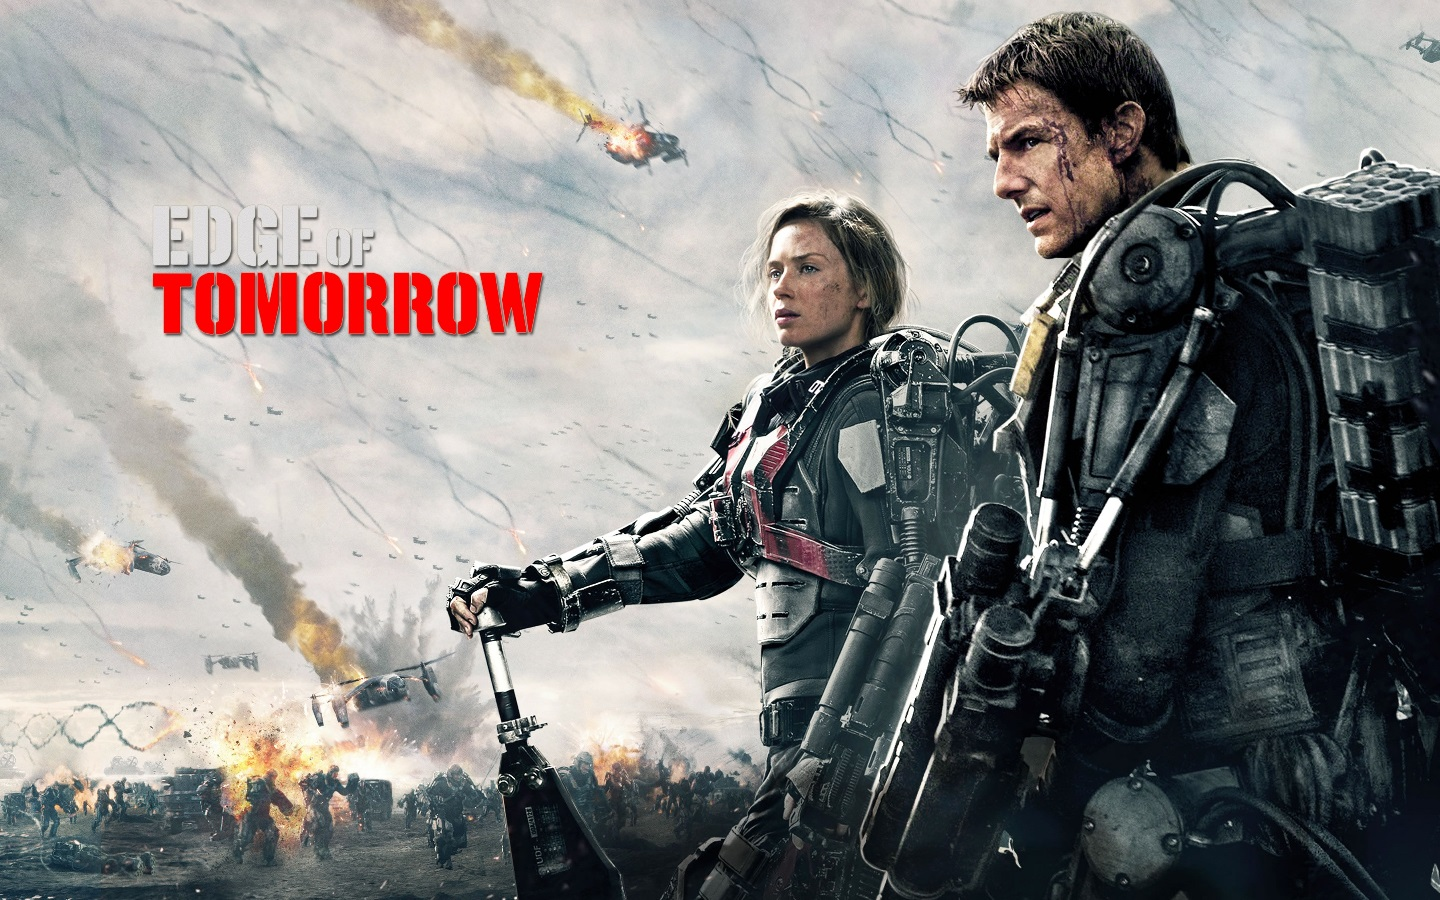 edge_of_tomorrow_kokuti-001.jpg